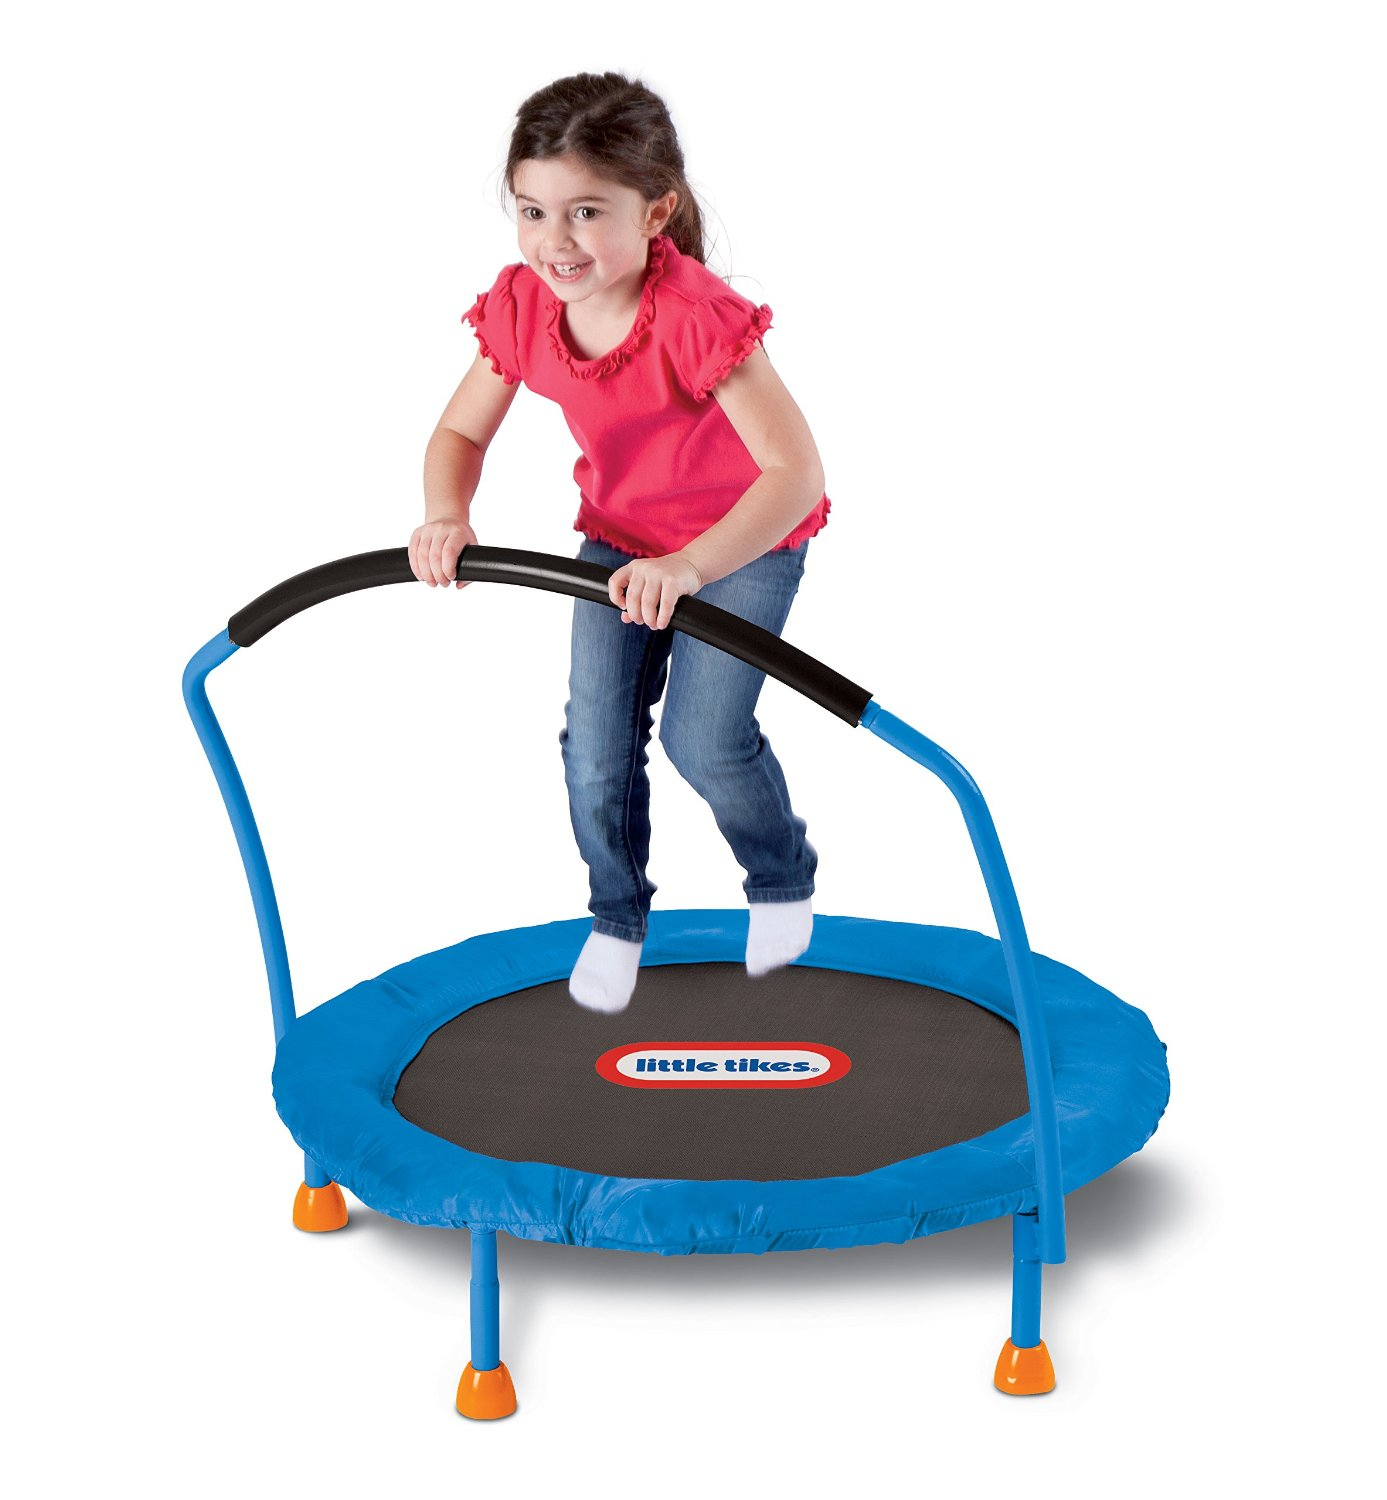 Little Tikes 3' Trampoline Only $44.99! (reg. $79.99